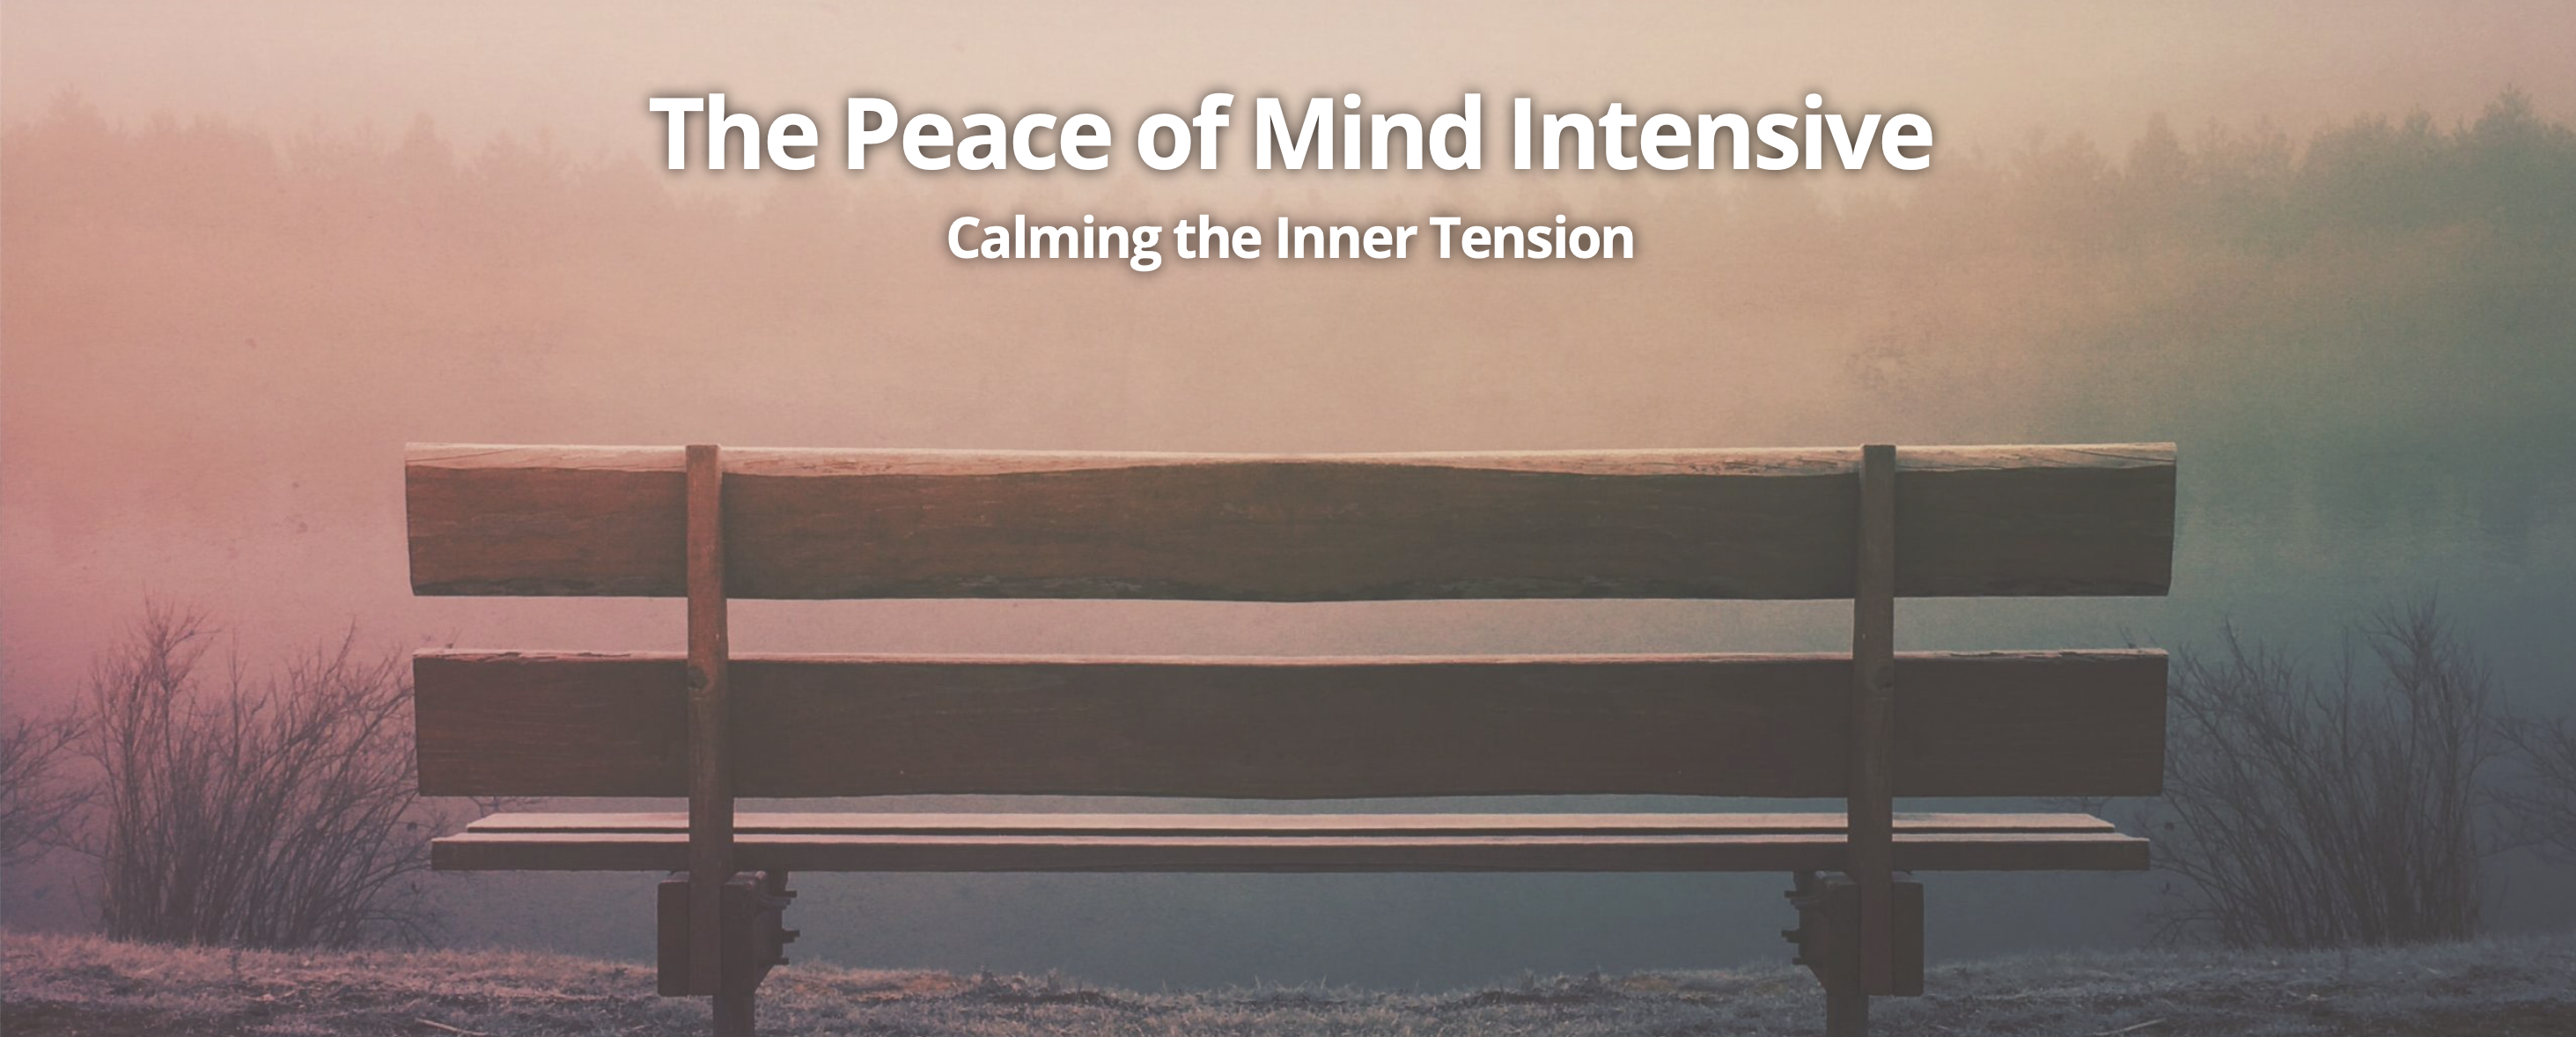 The Peace of Mind Intensive